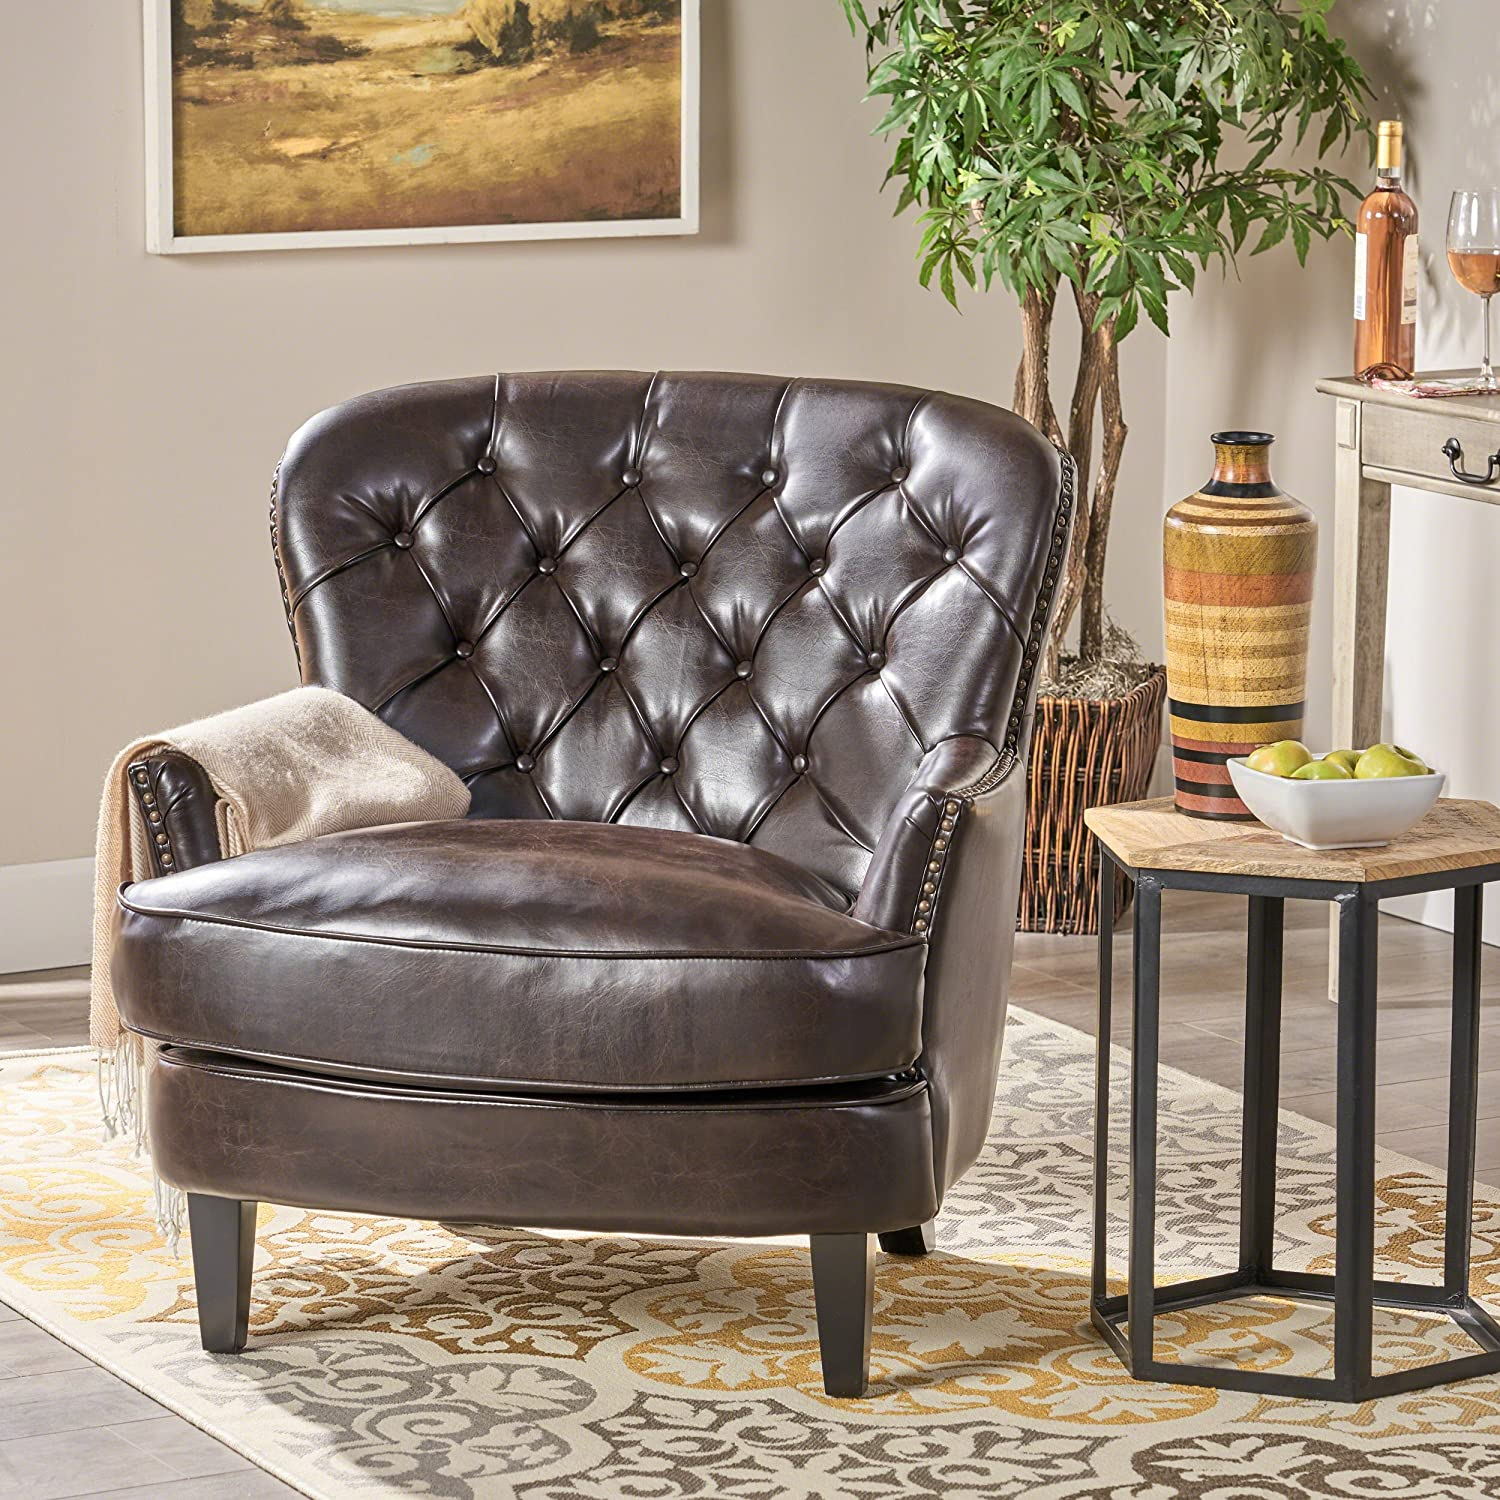 Amazon com great deal furniture alfred tufted brown bonded leather club chair contemporary lounge accent chair kitchen dining